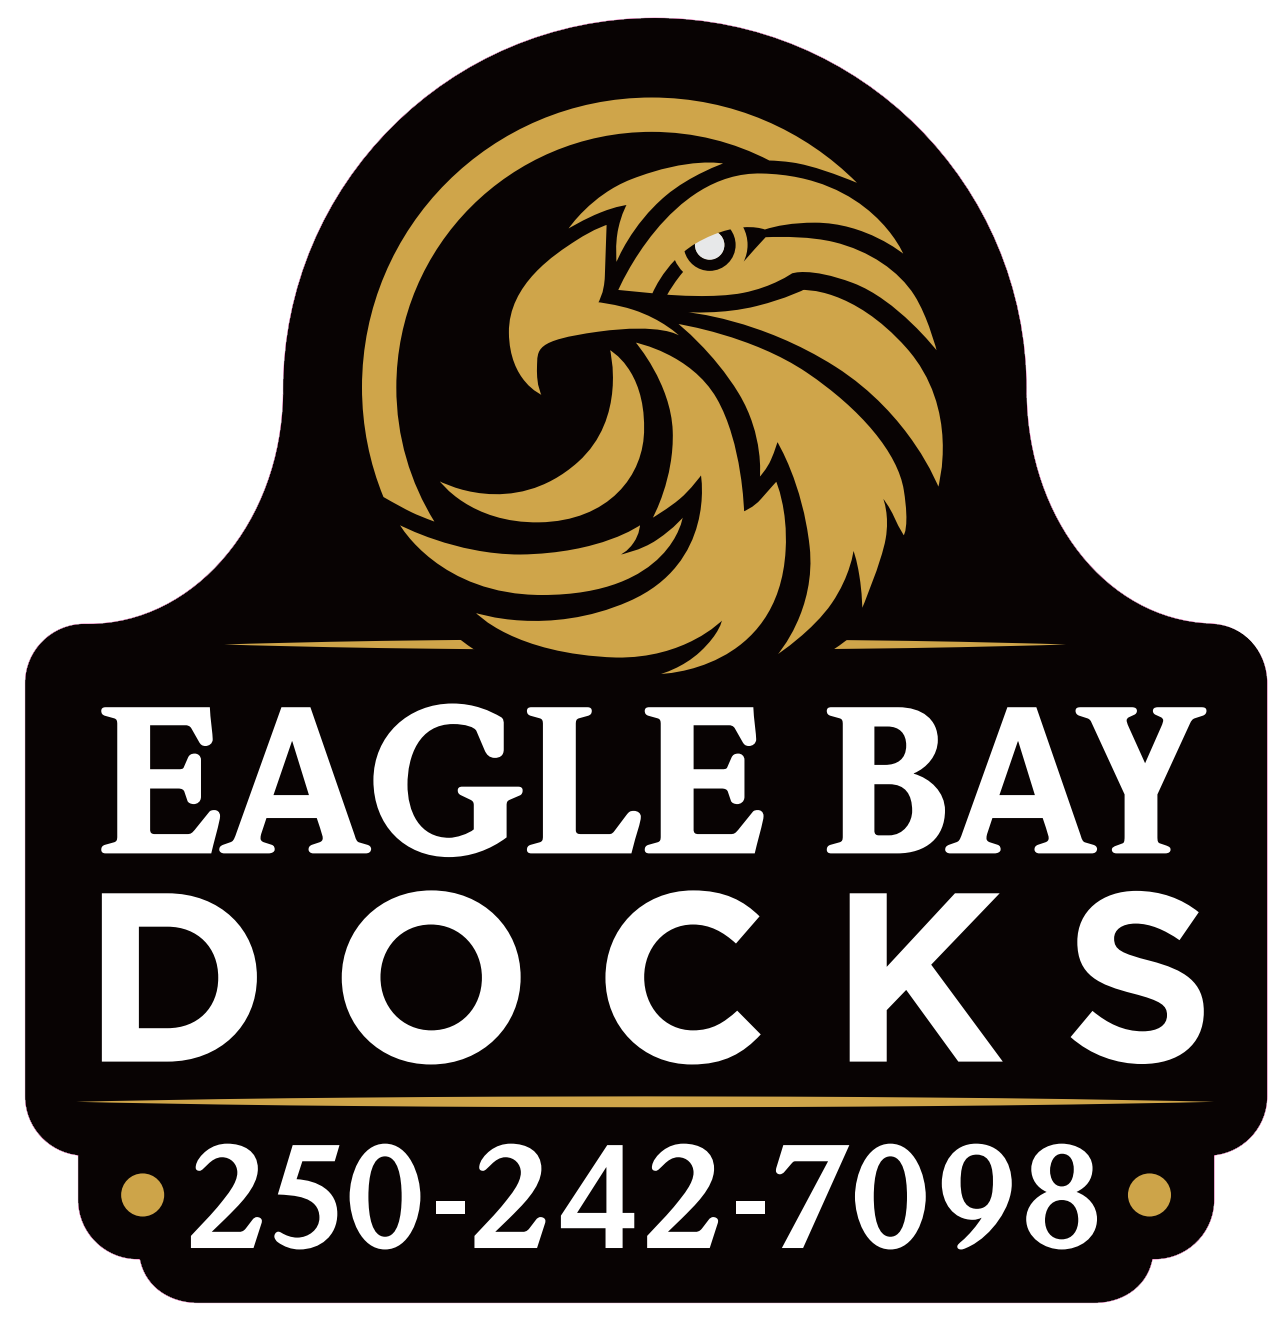 Eagle Bay Docks